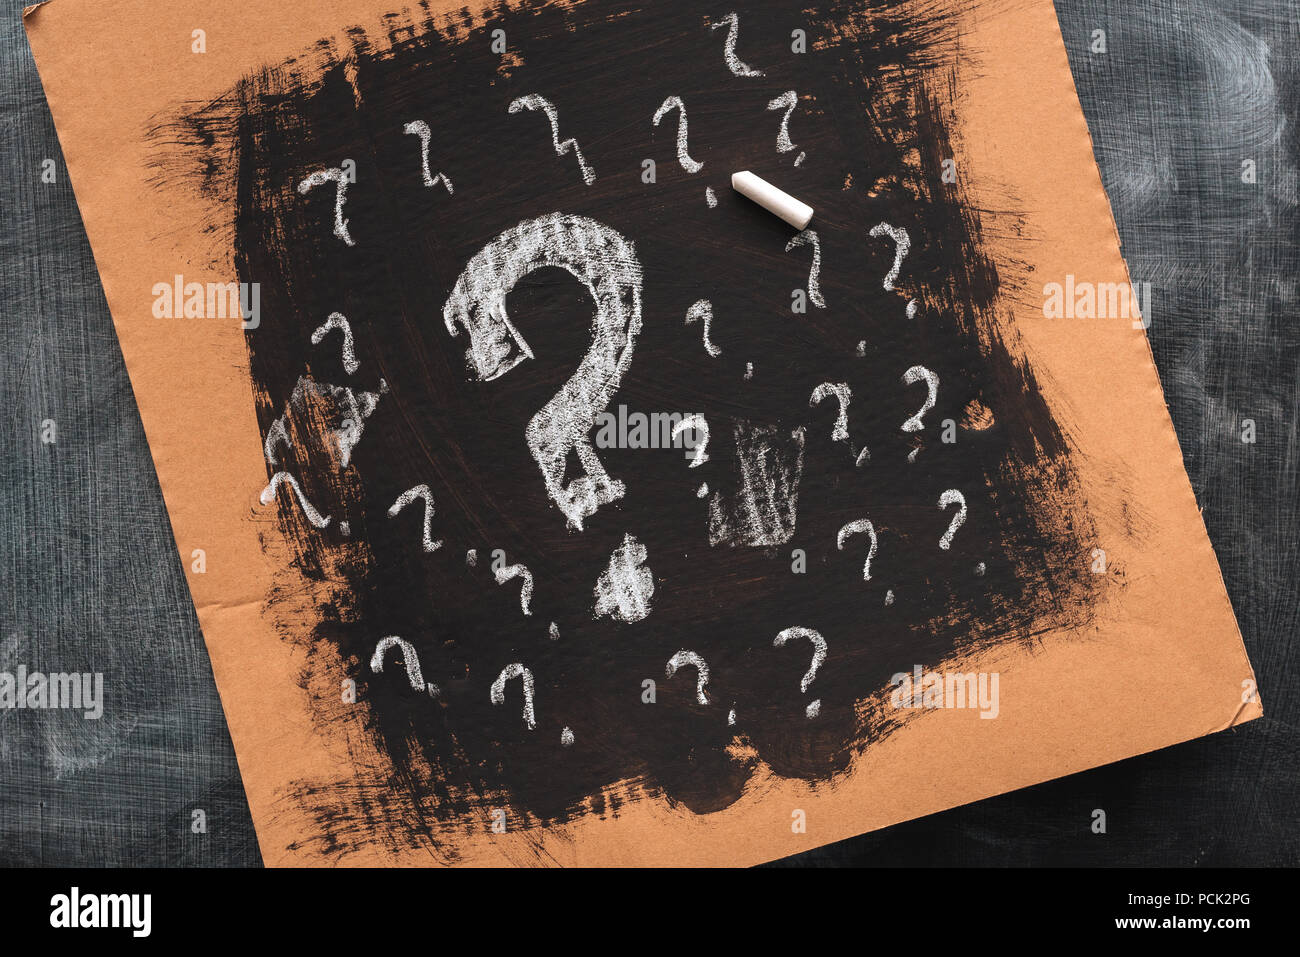 Sketched question marks on cardboard paper, concept of perplex and confusion - Stock Image